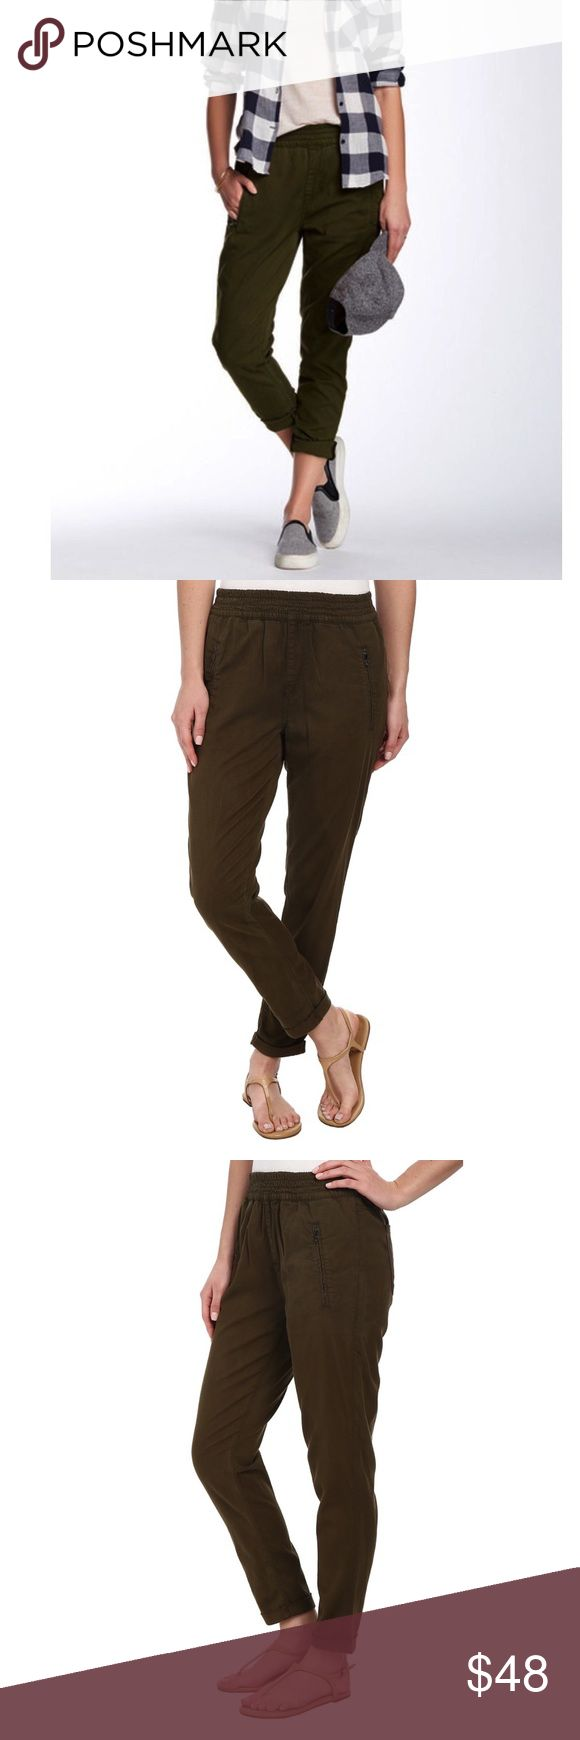 """7 For All Mankind Soft Pant Joggers 7 For All Mankind """"The Soft Pant"""" olive brown jogger like Pants. In excellent condition. Size 30 equal to a size 10. 26 inch inseam. Color is most like the stock photos. My lighting is not good in my own photos. 7 For All Mankind Pants Ankle & Cropped"""